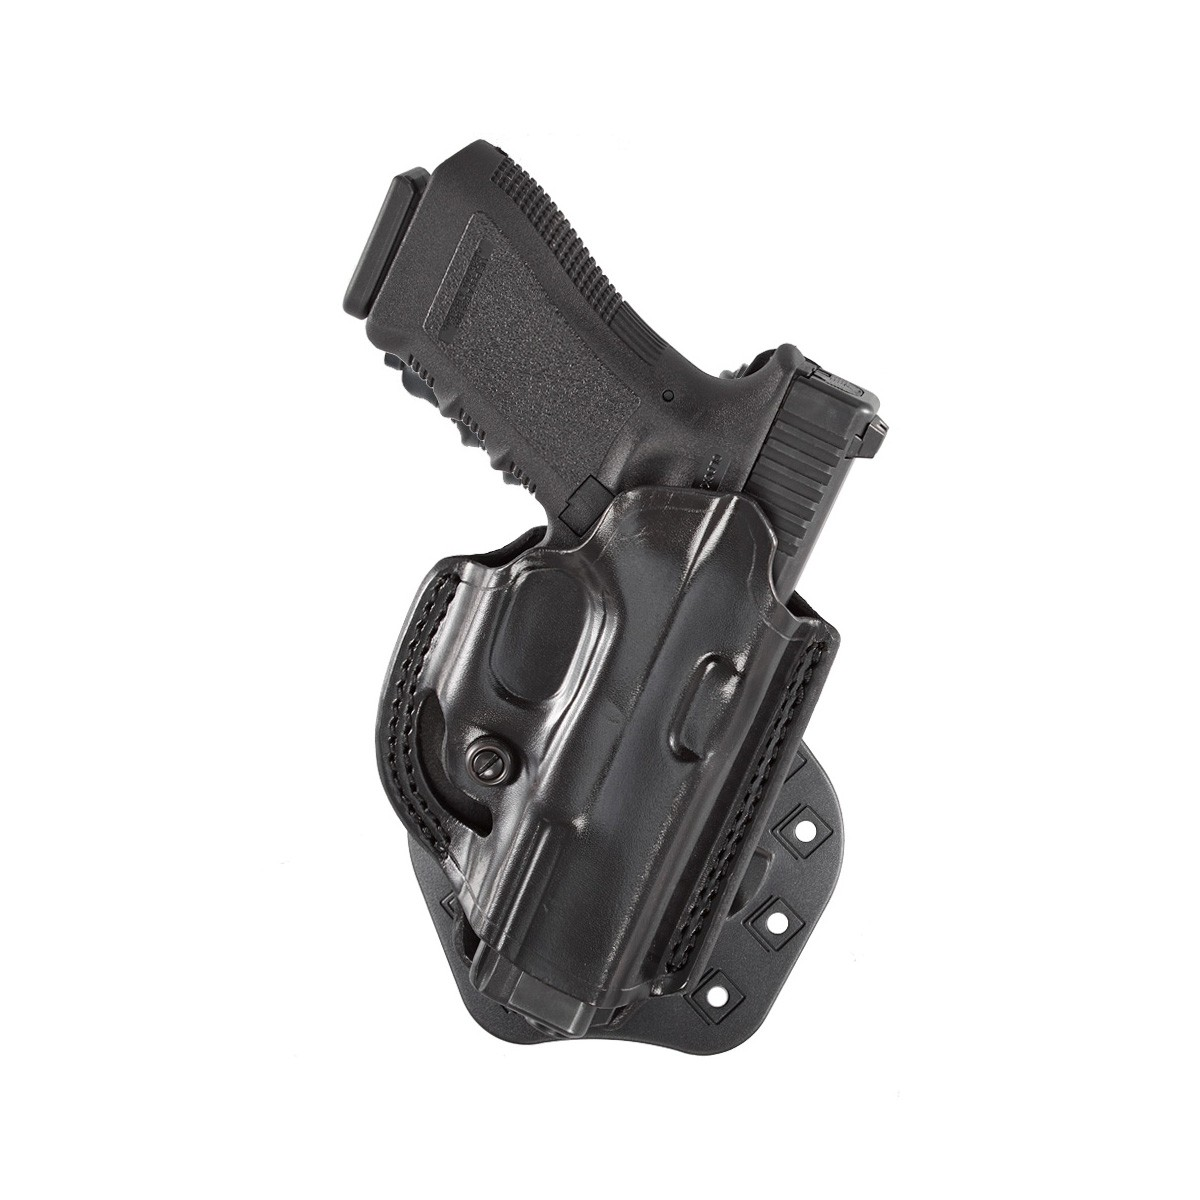 FlatSider™ XR19 Paddle Holster Model: 268A